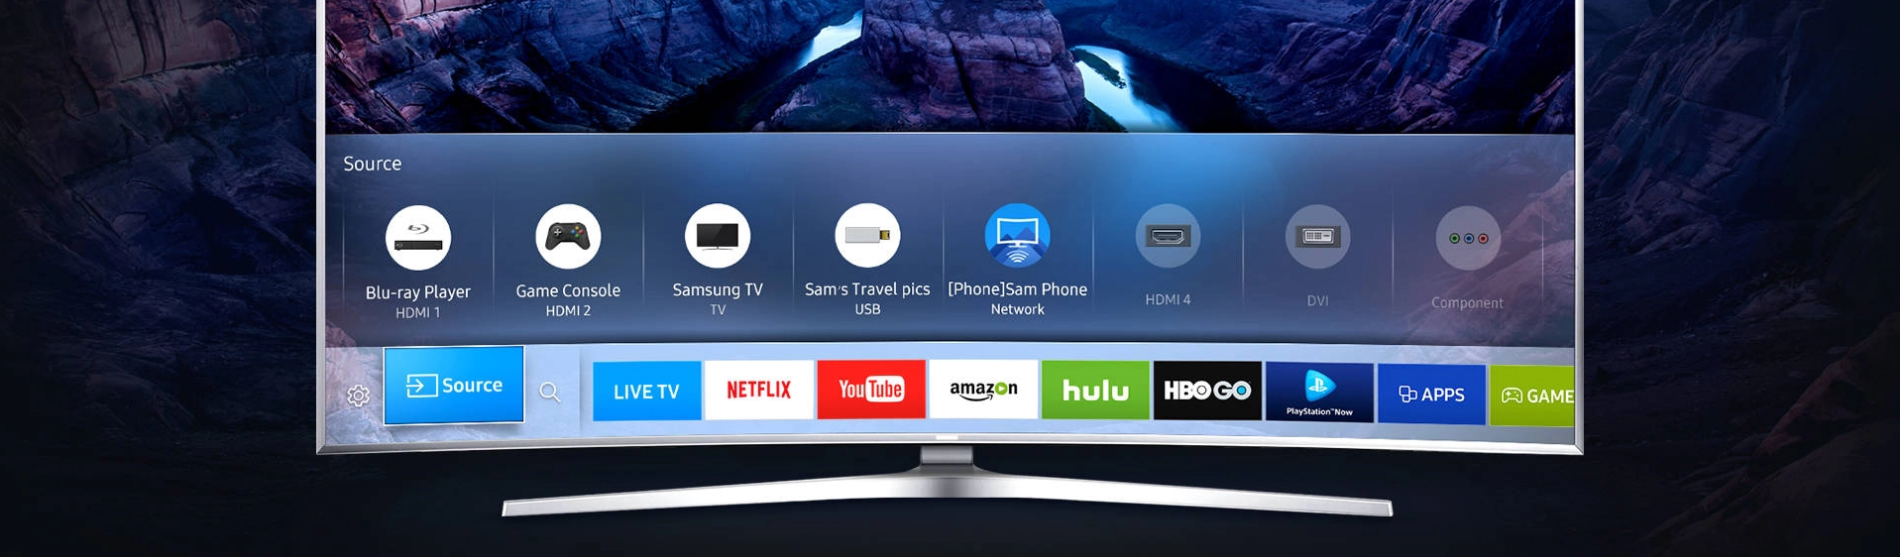 Samsung Confirms It Won't Dump Tizen OS For Its Android TV Lineup